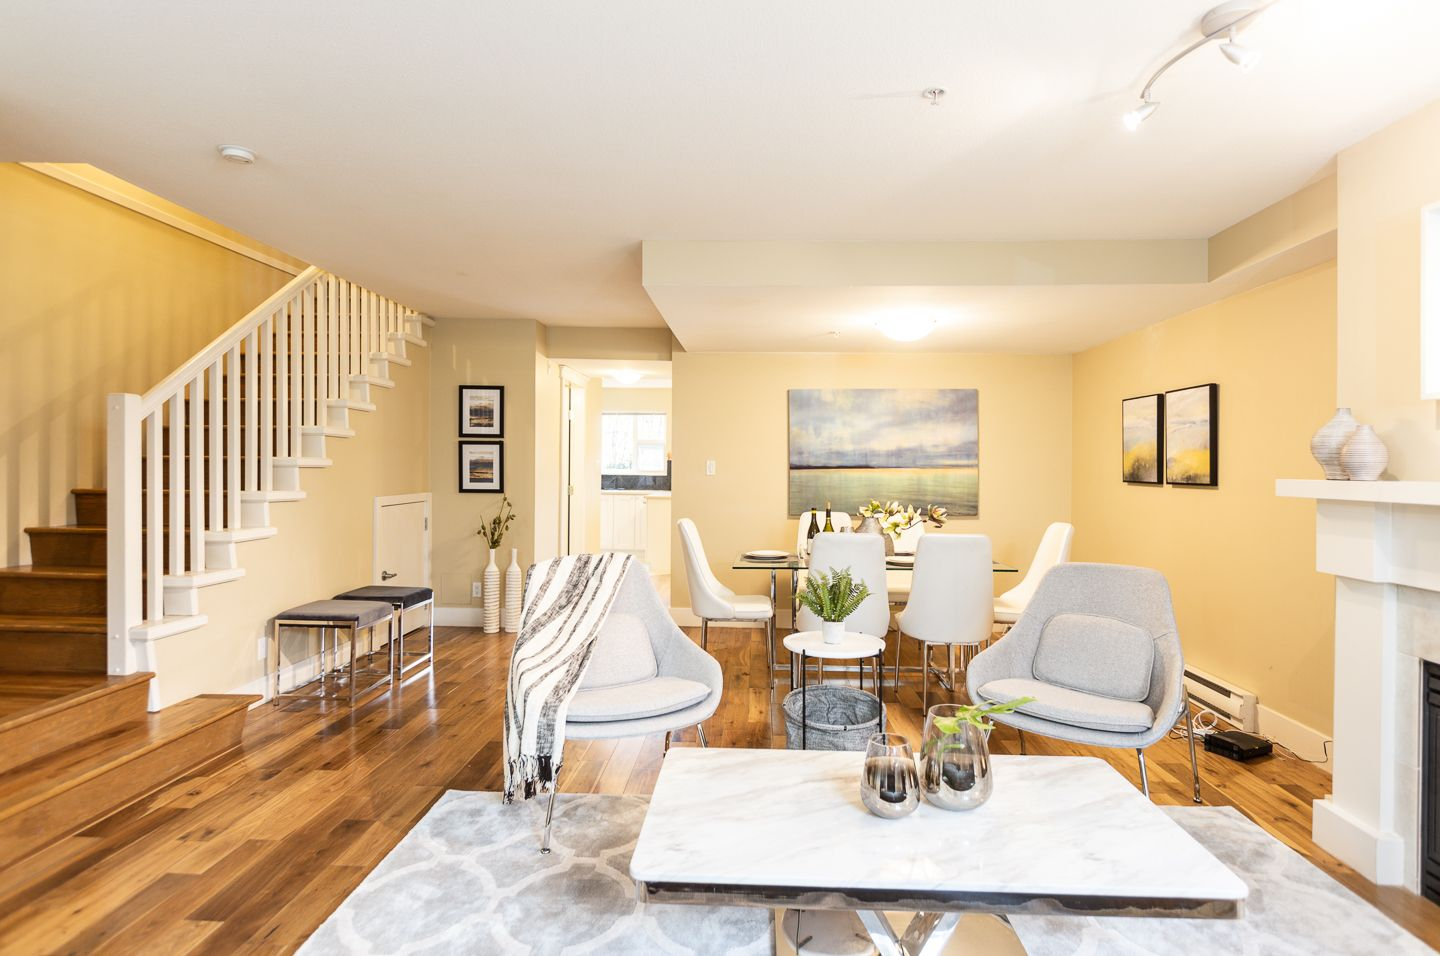 Main Photo: 208-2071 WEST 42ND AVE in VANCOUVER: Kerrisdale Townhouse for sale (Vancouver West)  : MLS®# R2520911